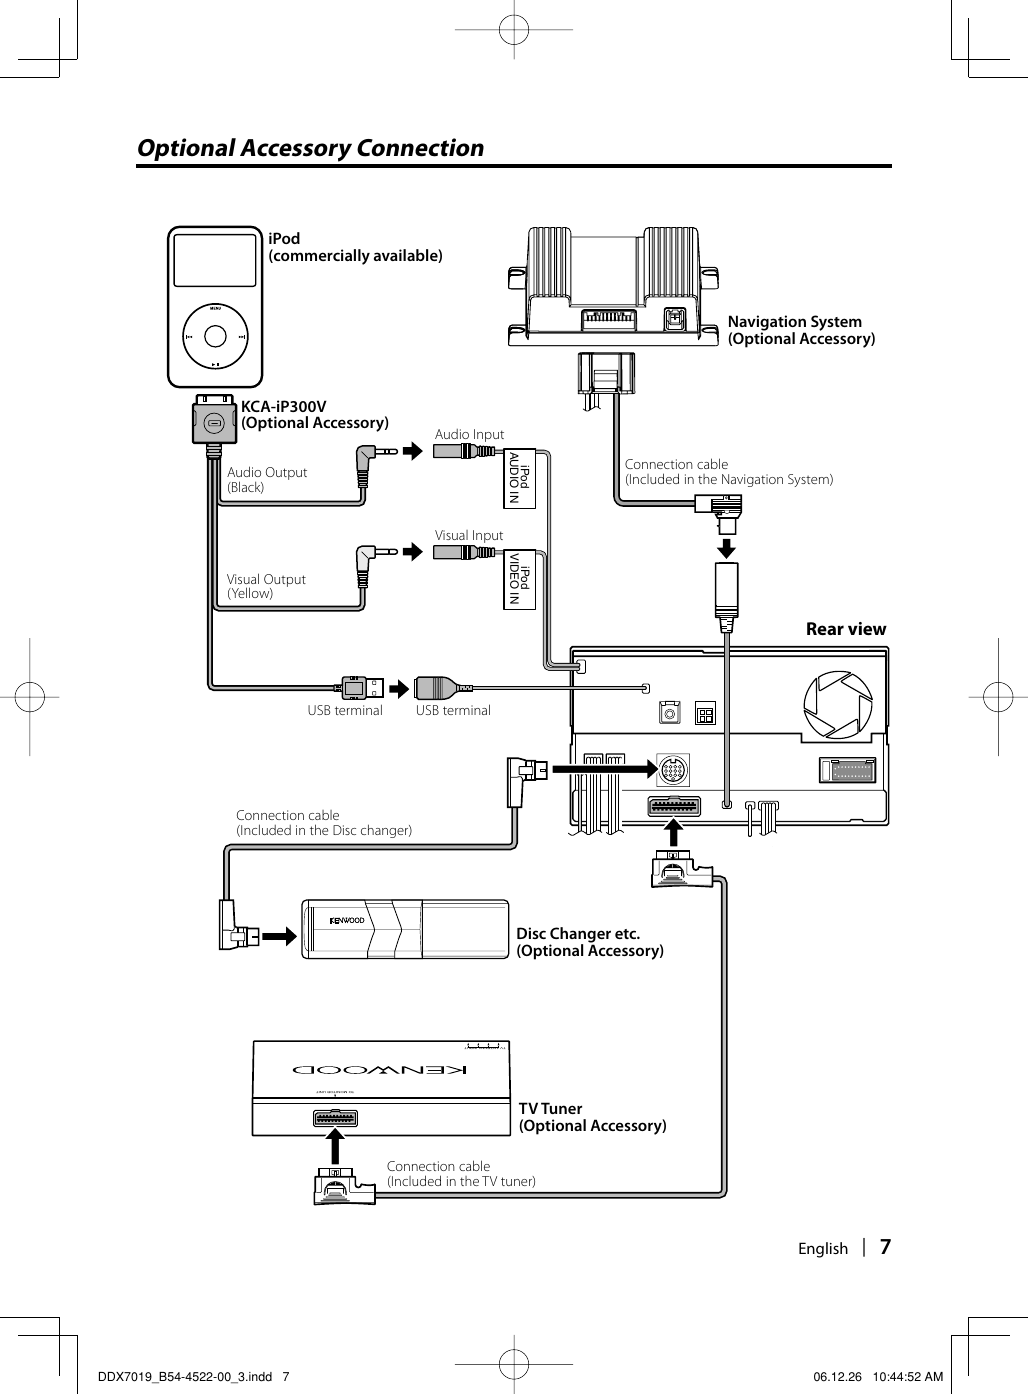 Kenwood Kvt 717dvd Wiring Schematic Diagrams 819 Harness 4 Pin Ddx7019 Diagram Usb Cable Car Dvd